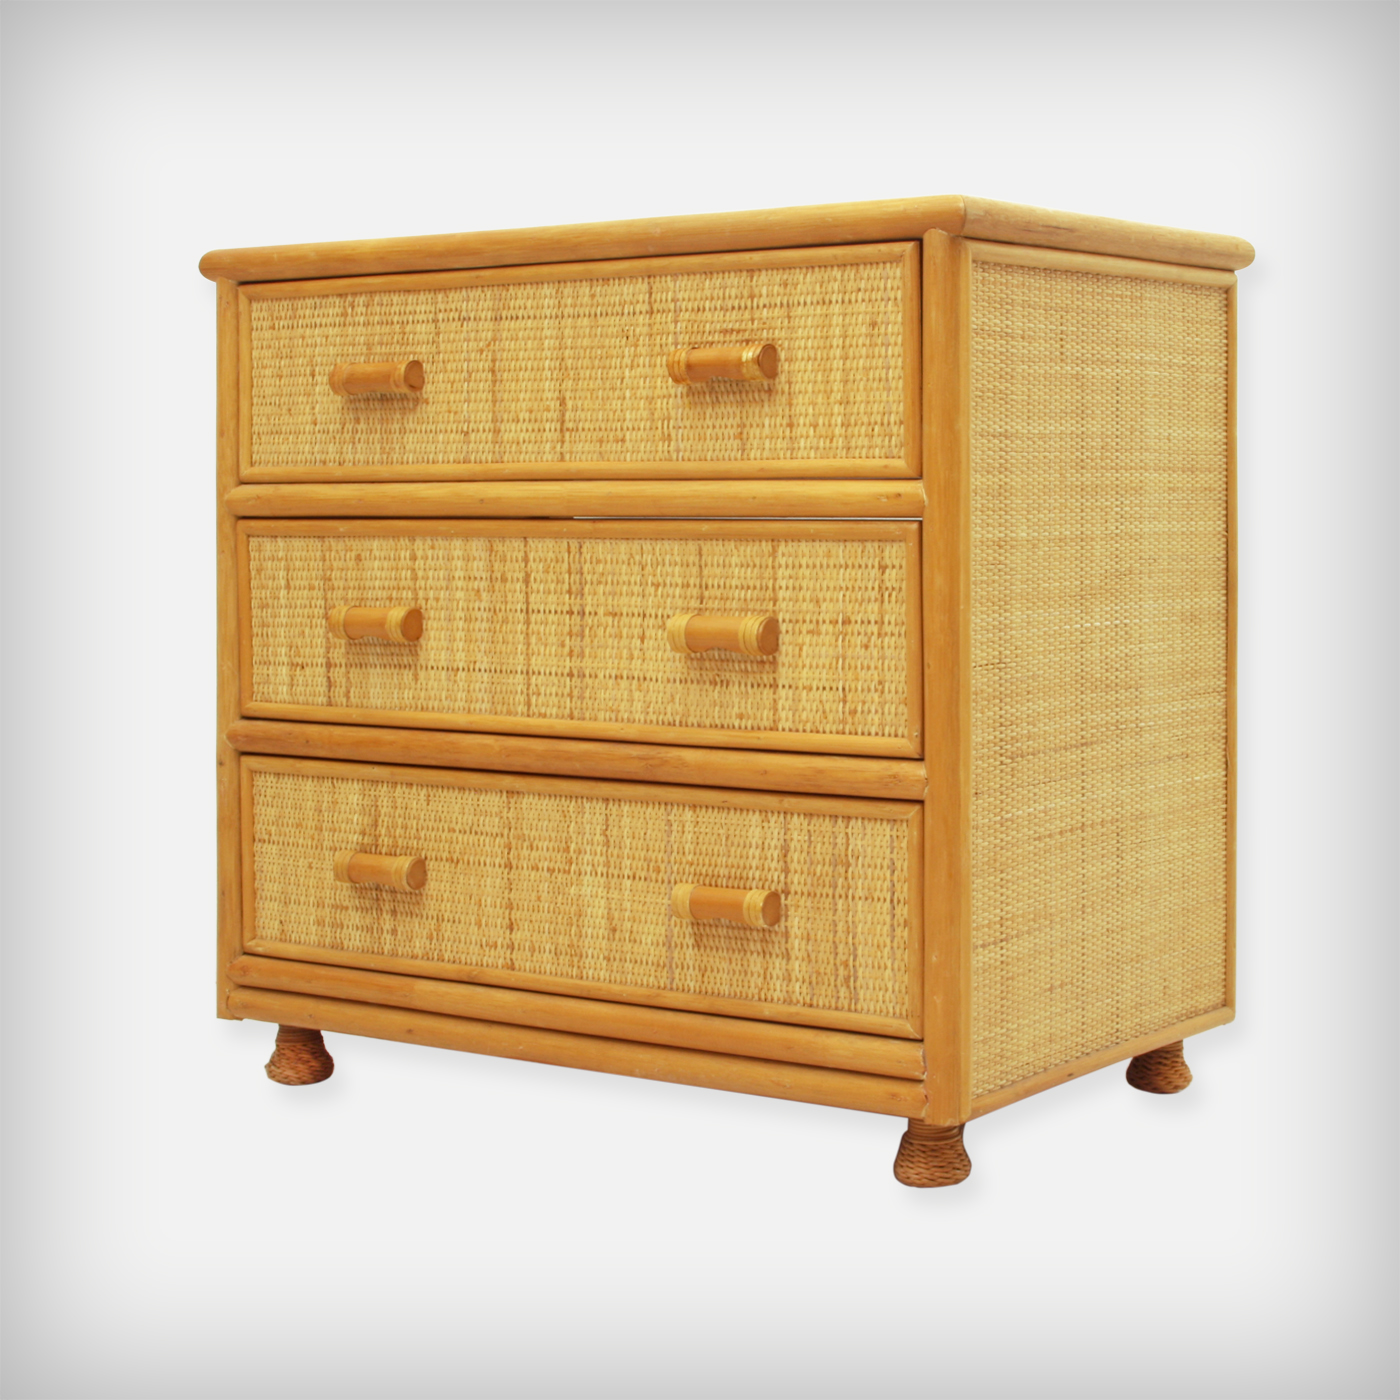 unknown rattan bamboo chest of drawers good old vintage. Black Bedroom Furniture Sets. Home Design Ideas